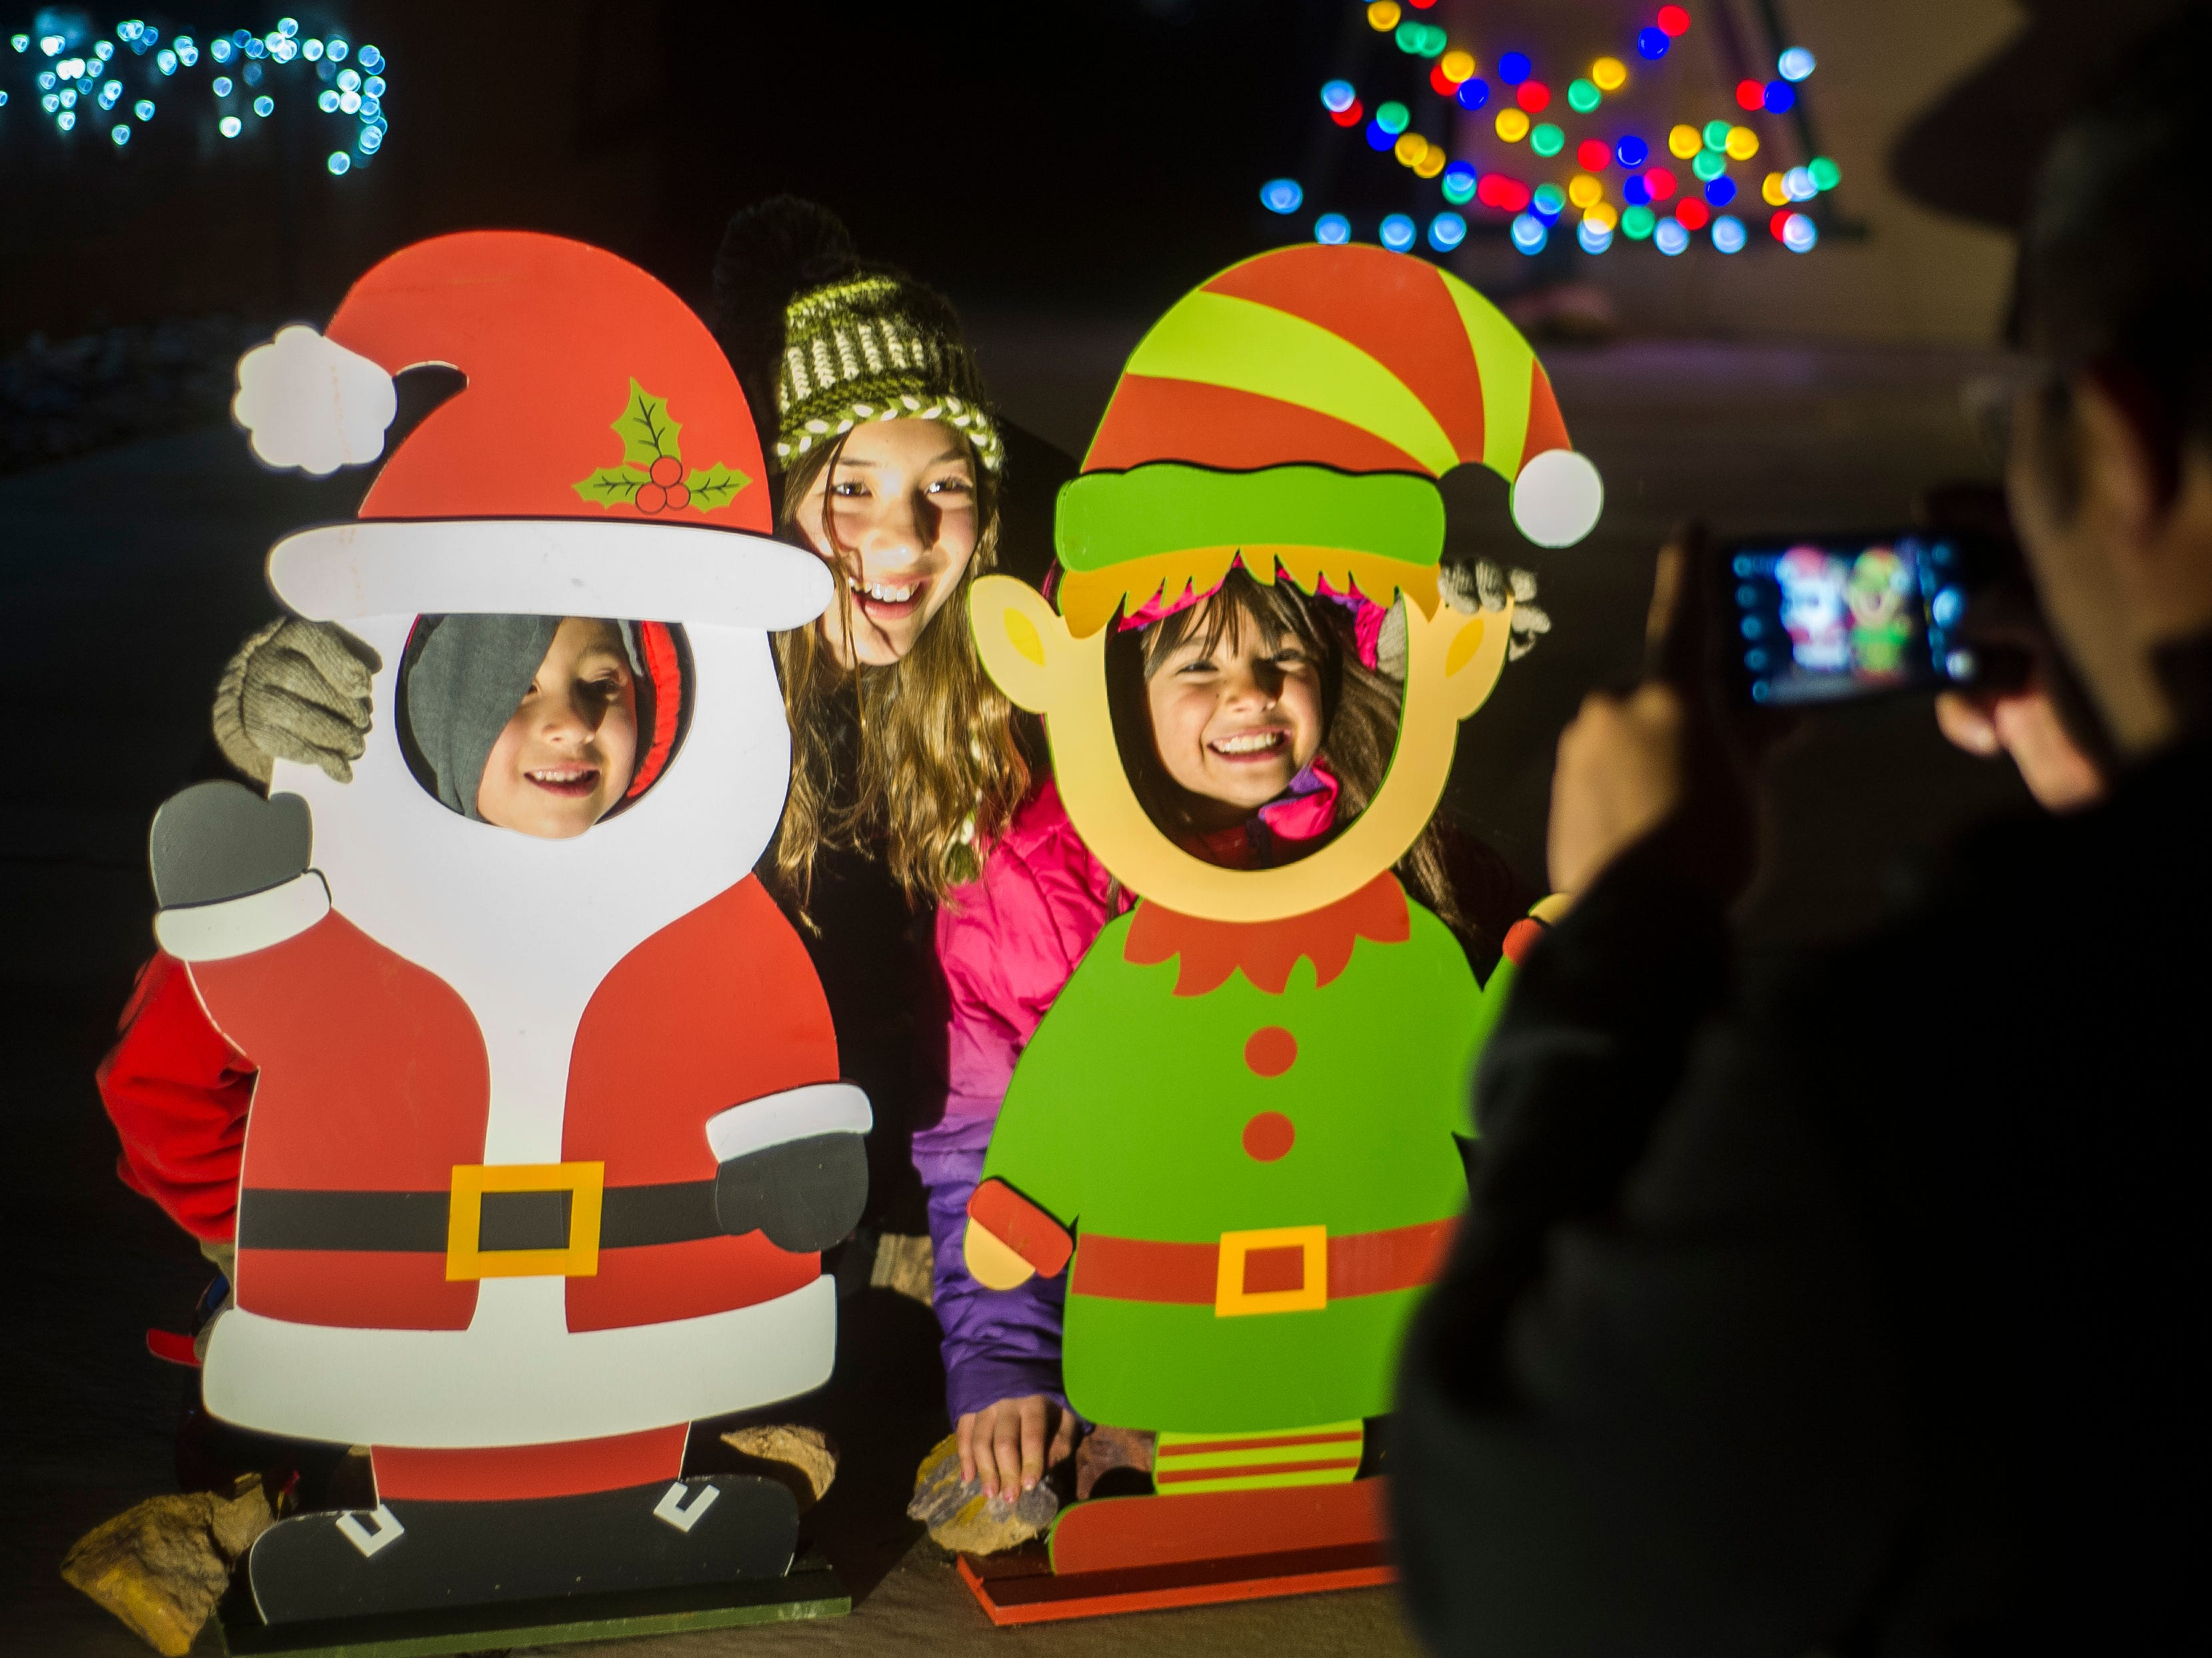 Children take a picture as elves during the opening night of Christmas Lane in Cedar City Friday, November 23, 2018. The lights will be on every night through New Year's Eve, and can be seen all along the Canyon Ridge neighborhood.